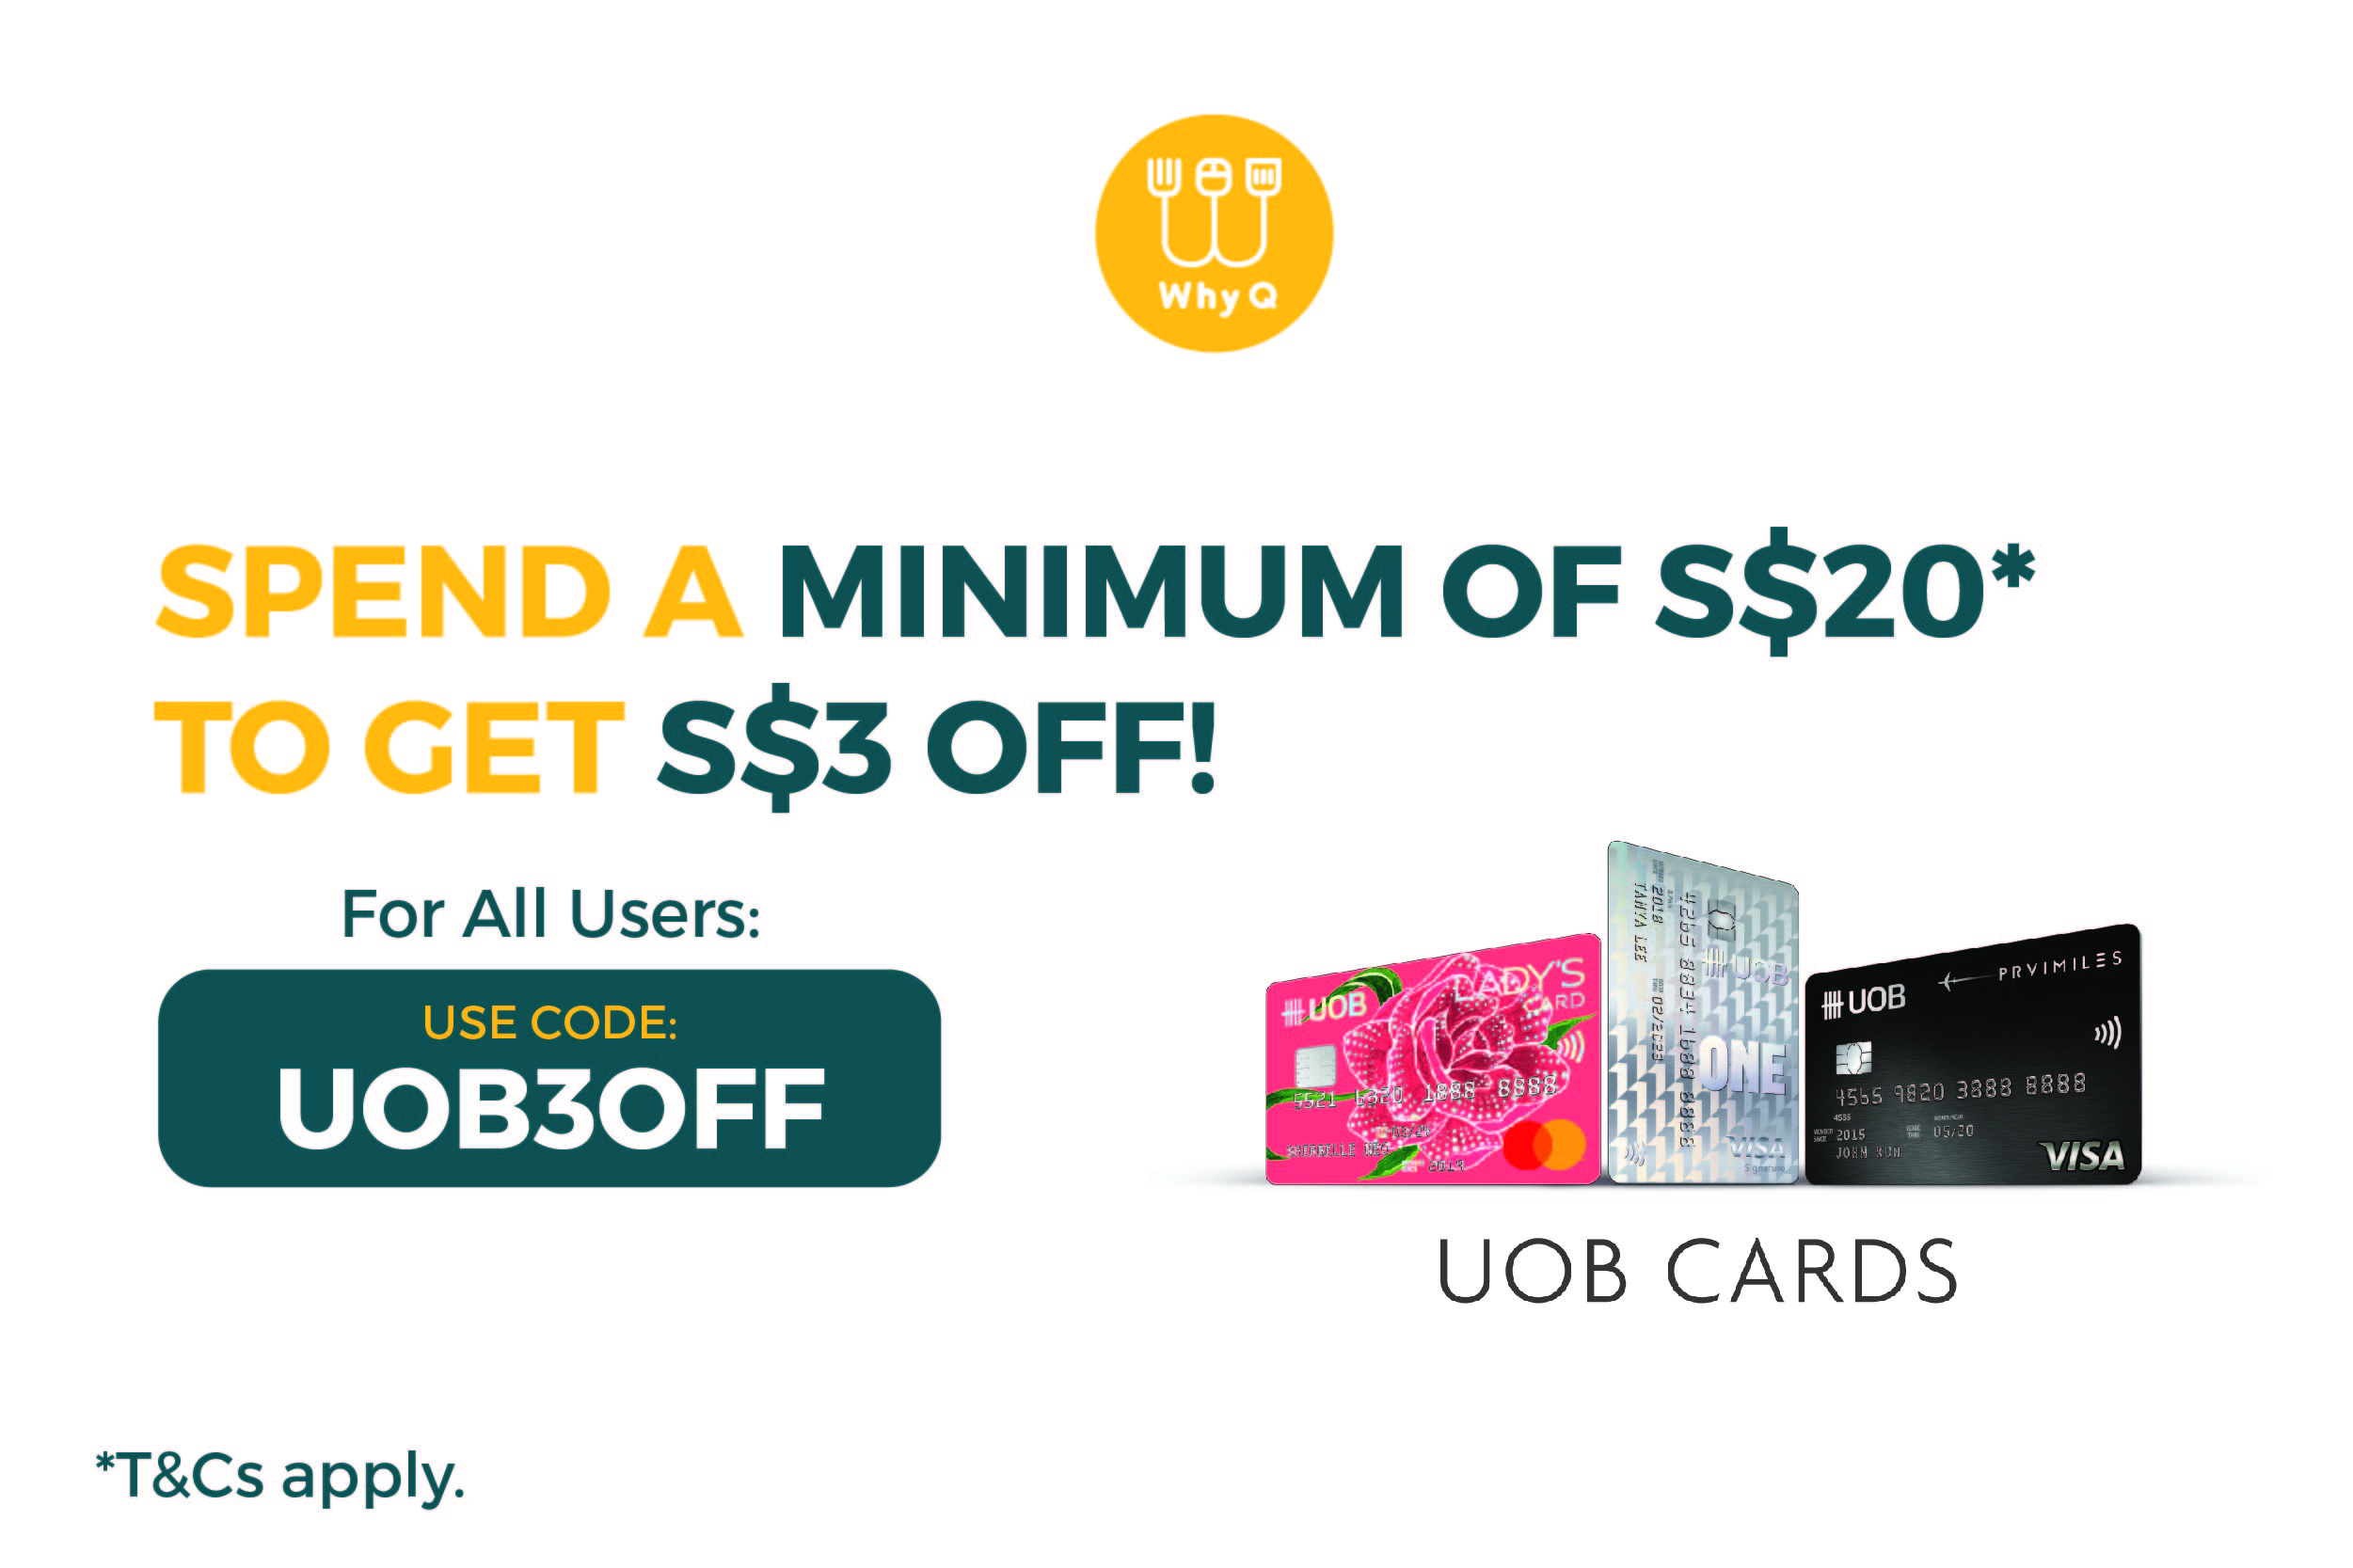 WhyQ Promotion UOB3OFF